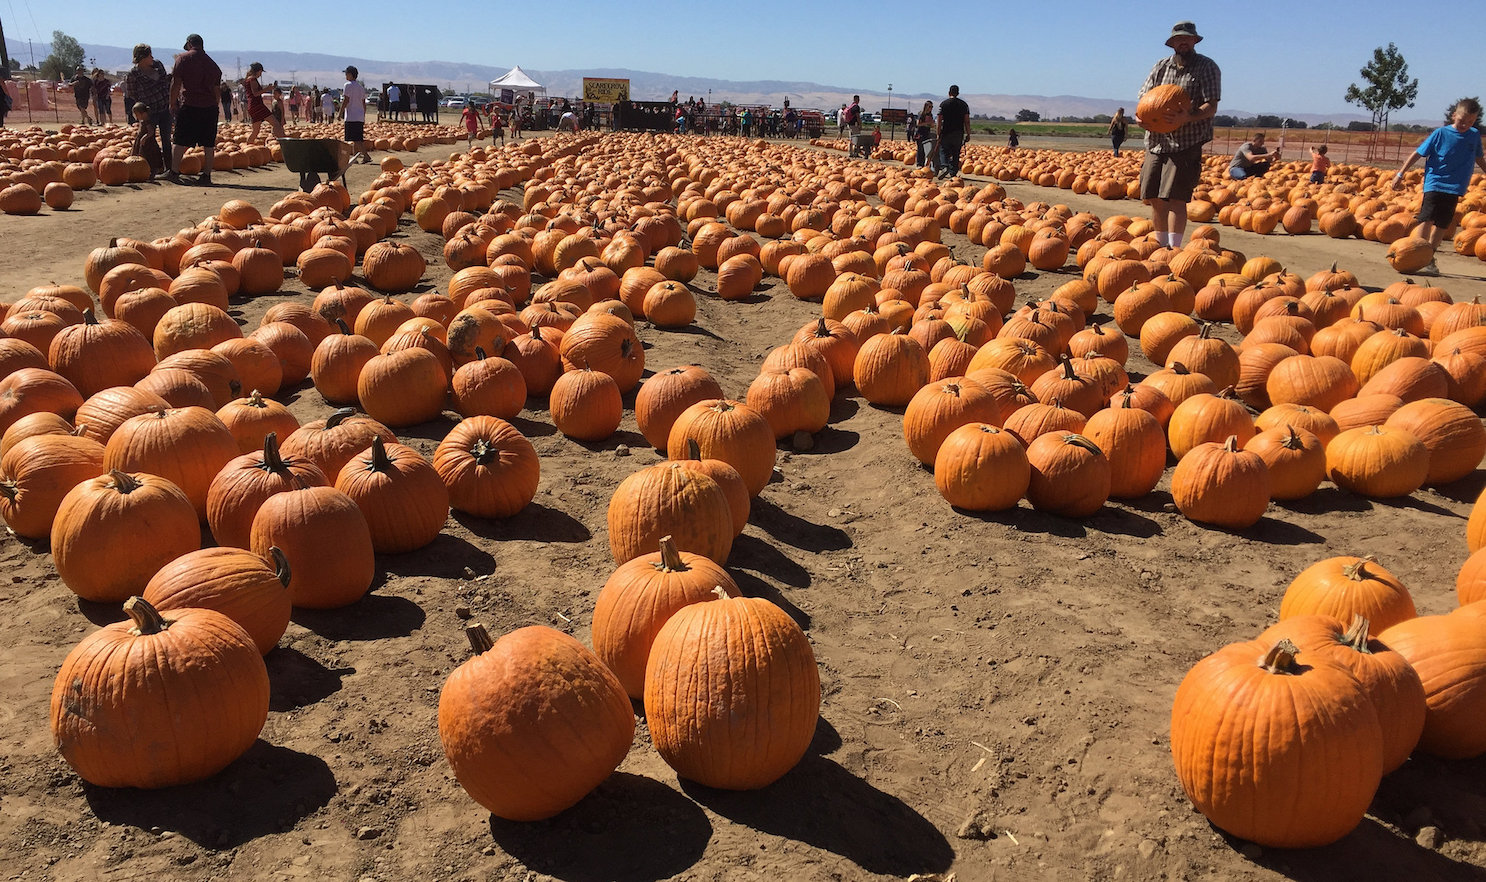 Pumpkin Farm in Mossdale, CA (Creative Commons photo by Ray Bouknight)